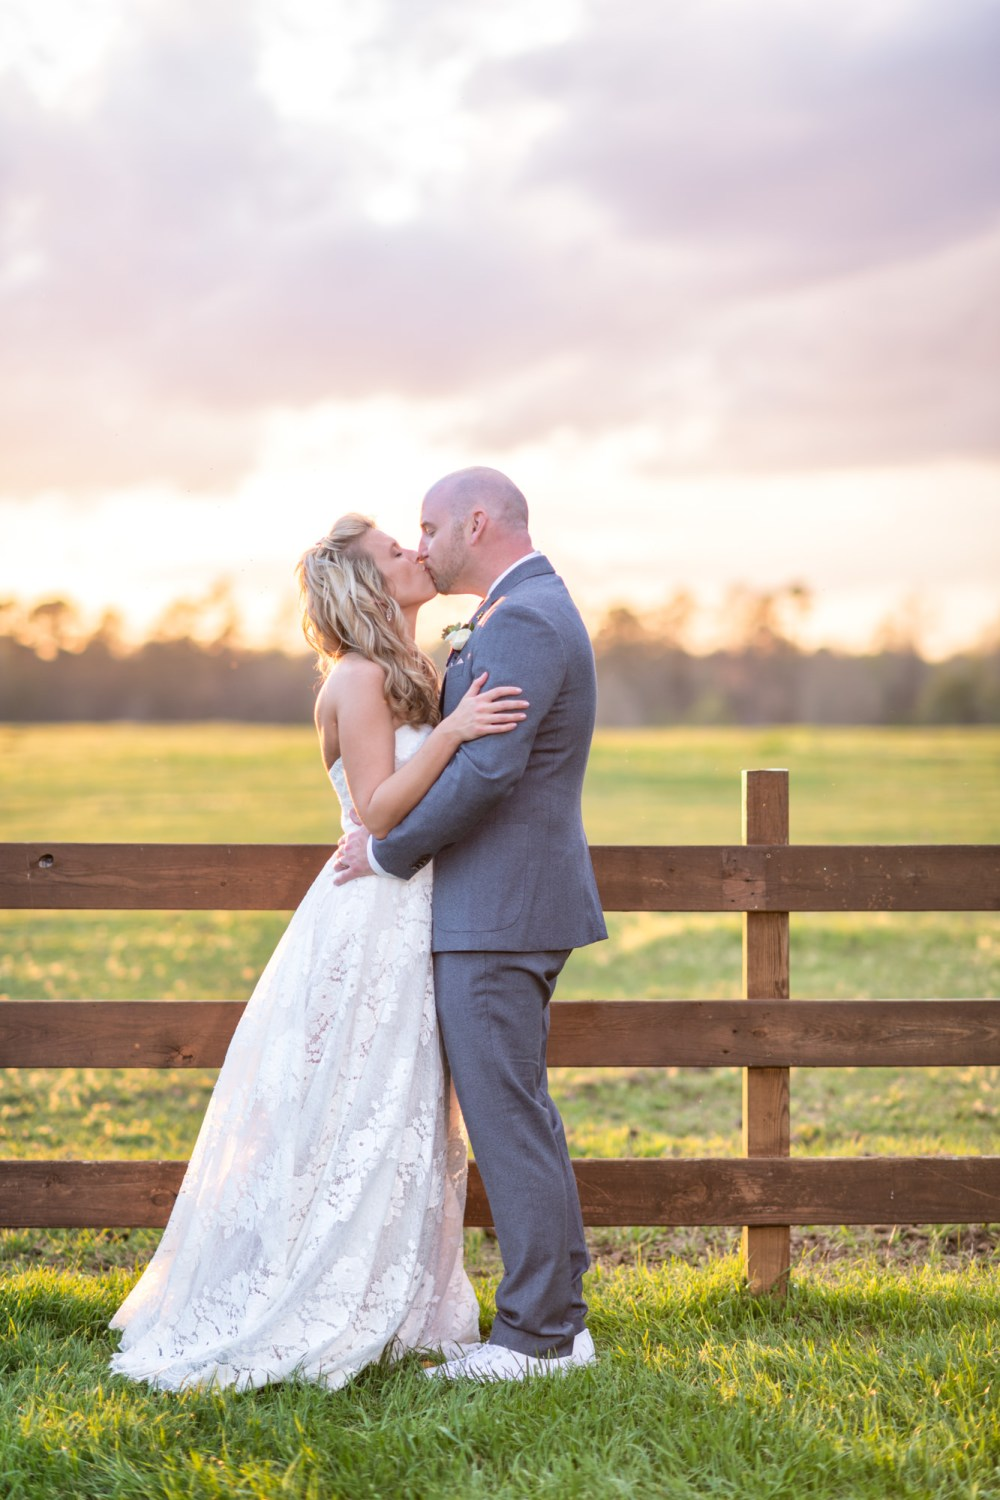 Groom pulling bride in for a kiss at sunset - Wildhorse at Parker Farms